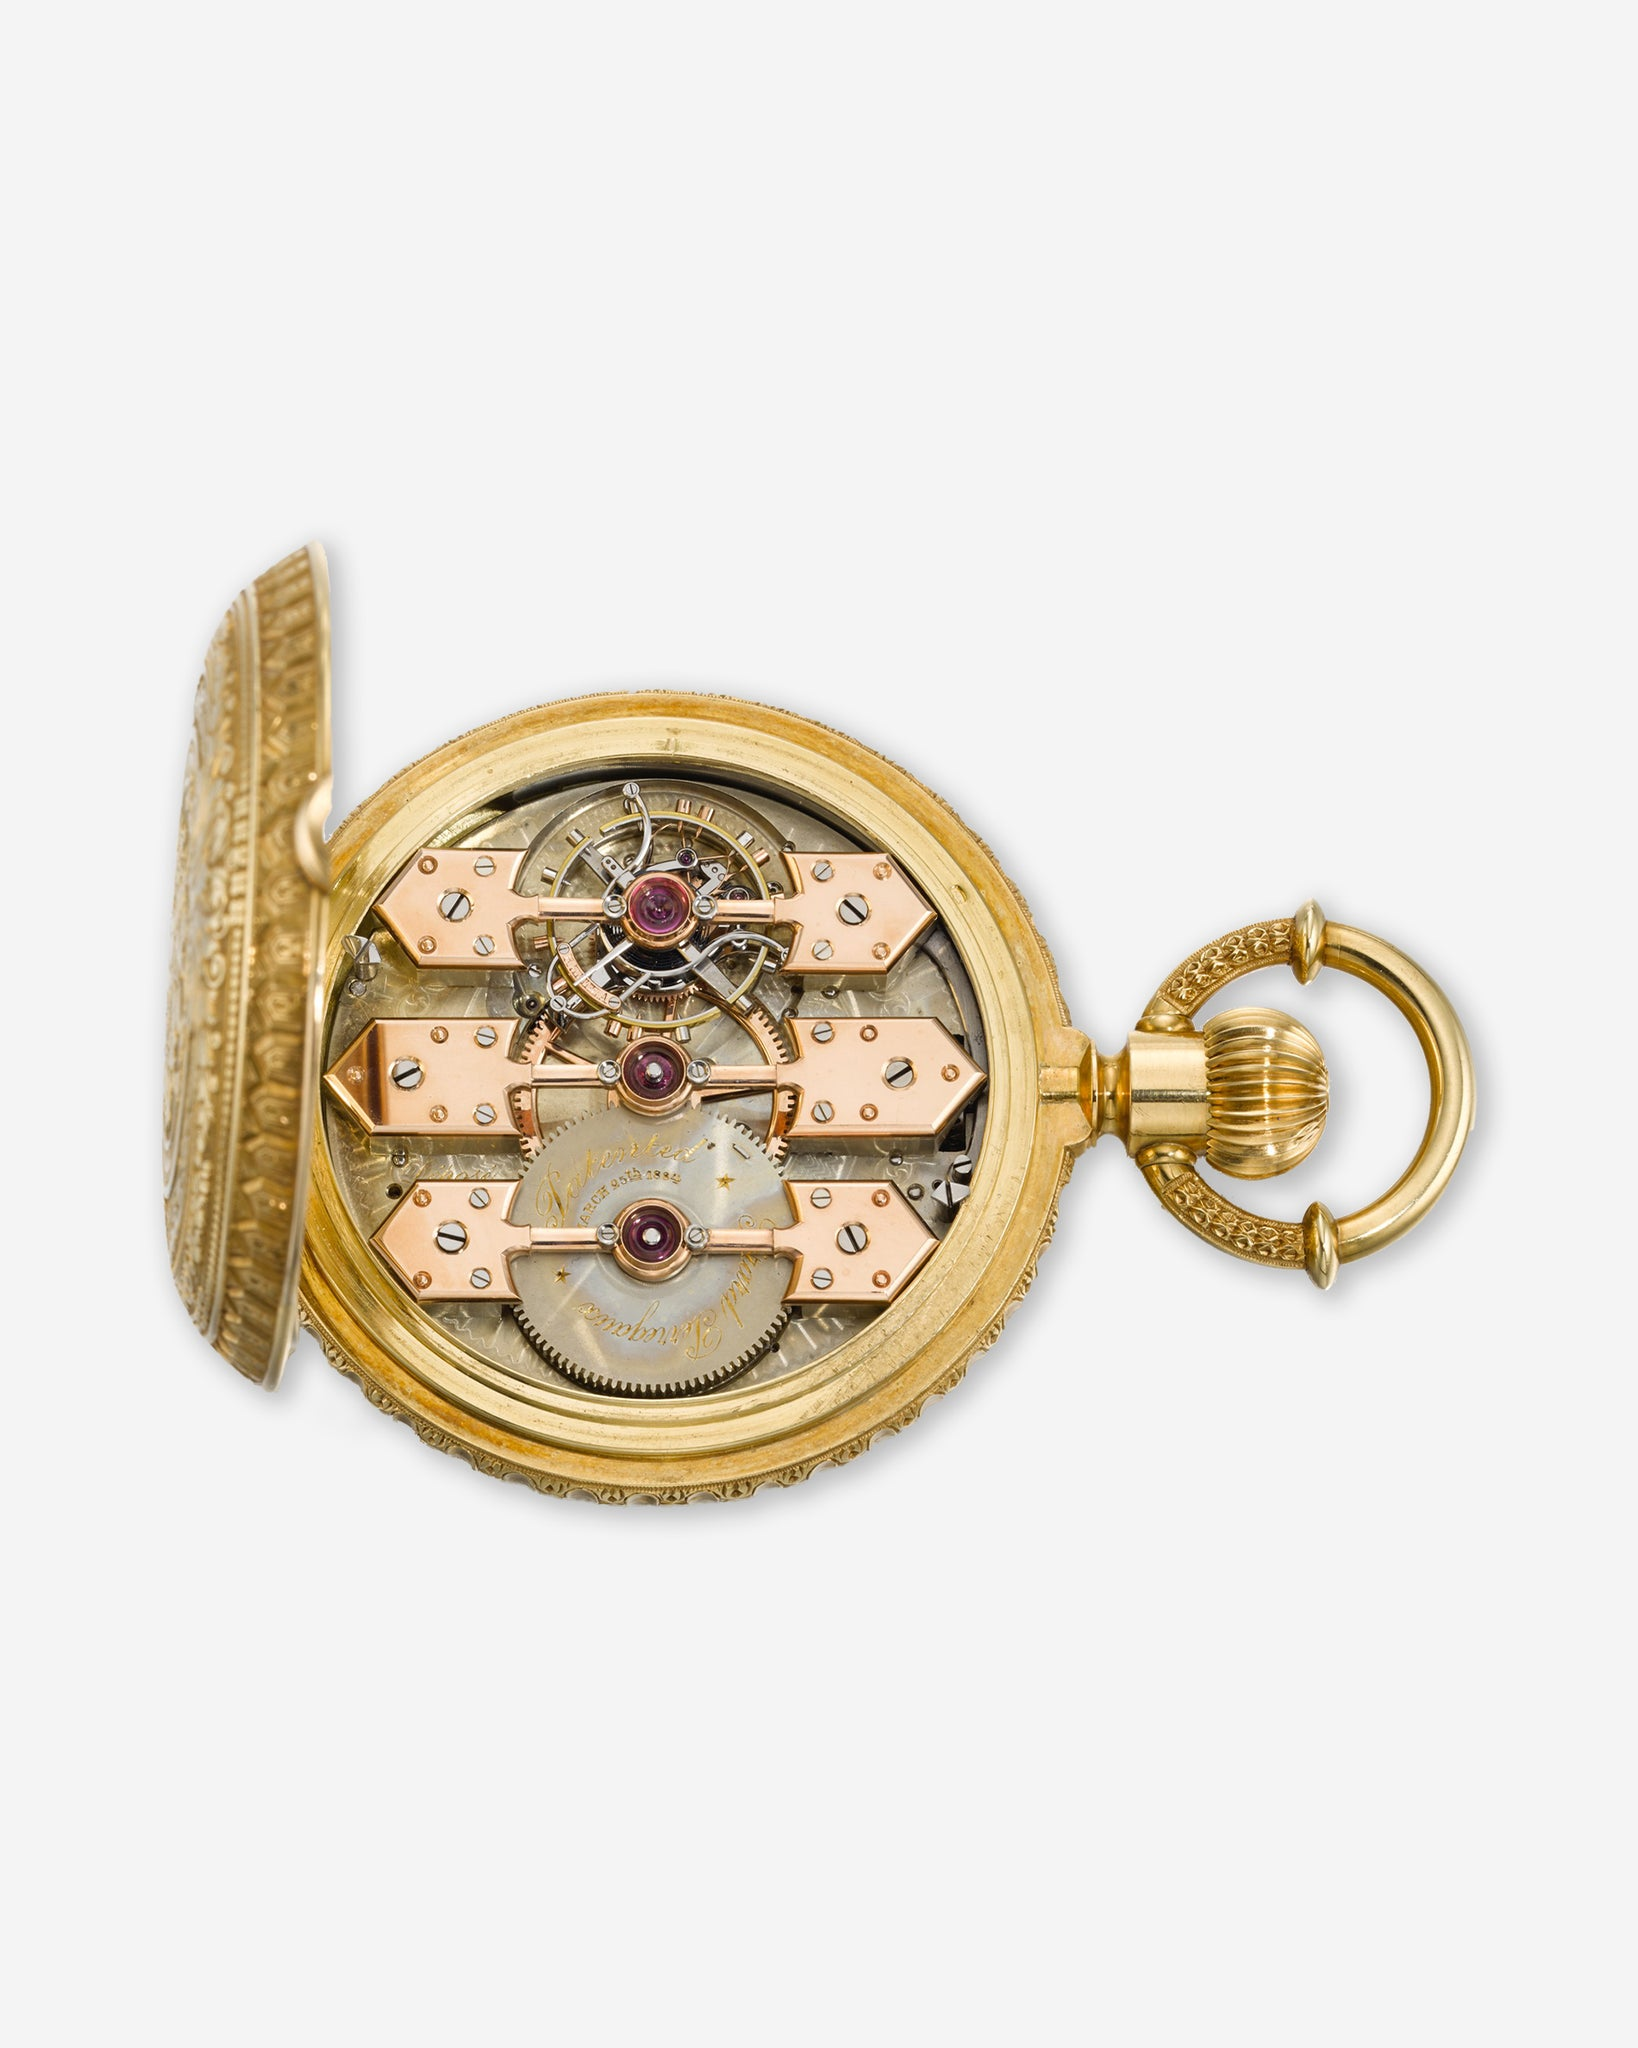 An early Girard-Perregaux three bridges tourbillon movement